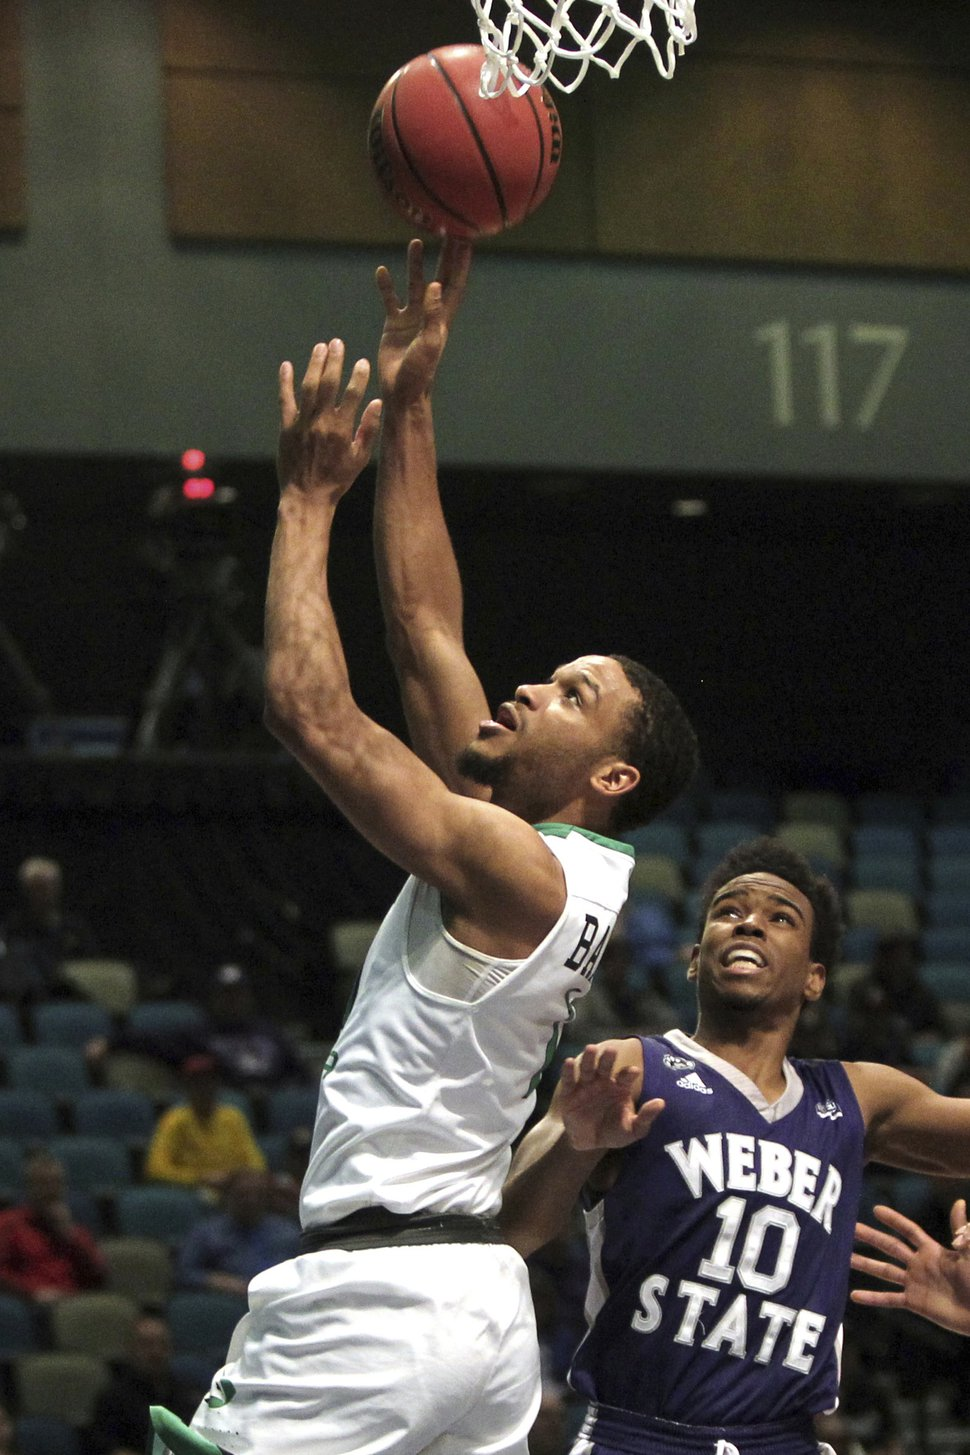 North Dakota guard Corey Baldwinl (1) scores in front of Weber State guard Jerrick Harding (10) during the first half an NCAA college basketball game in the finals of the Big Sky tournament in Reno, Nev., Saturday, March 11, 2017. (AP Photo/Lance Iversen)